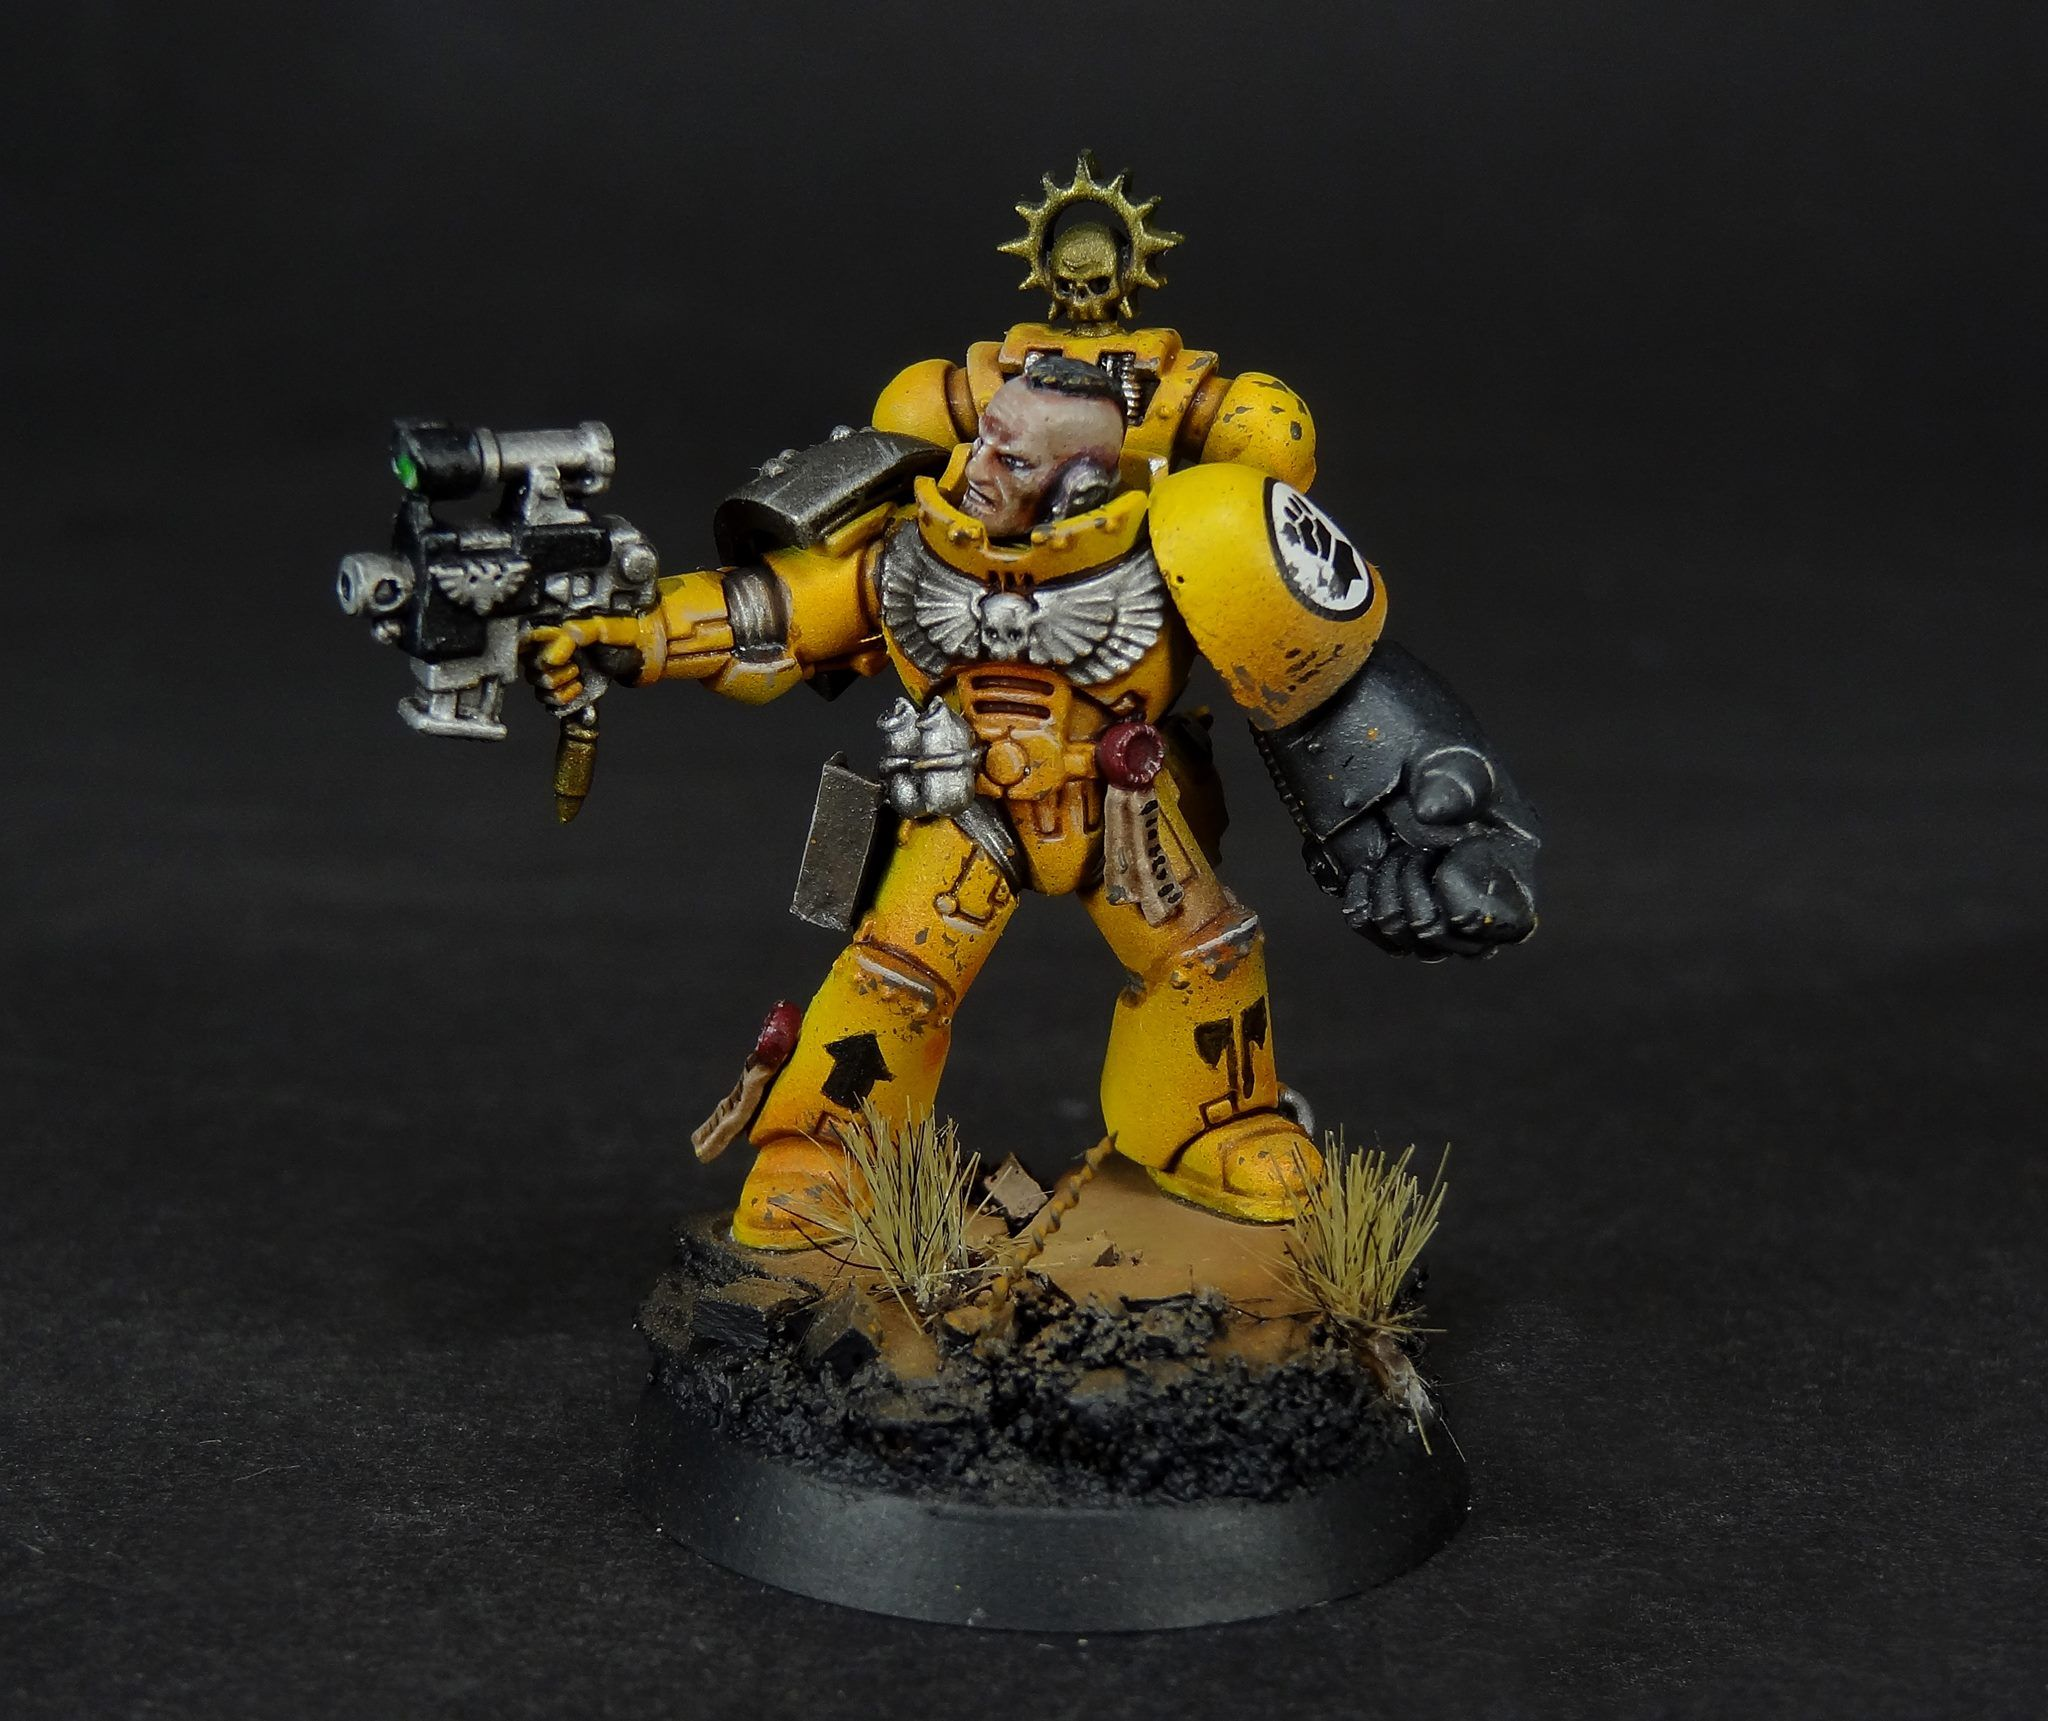 Imperial fists by dave paints astartes legion vii imperial fists pinterest warhammer 40k - Imperial fists 40k ...